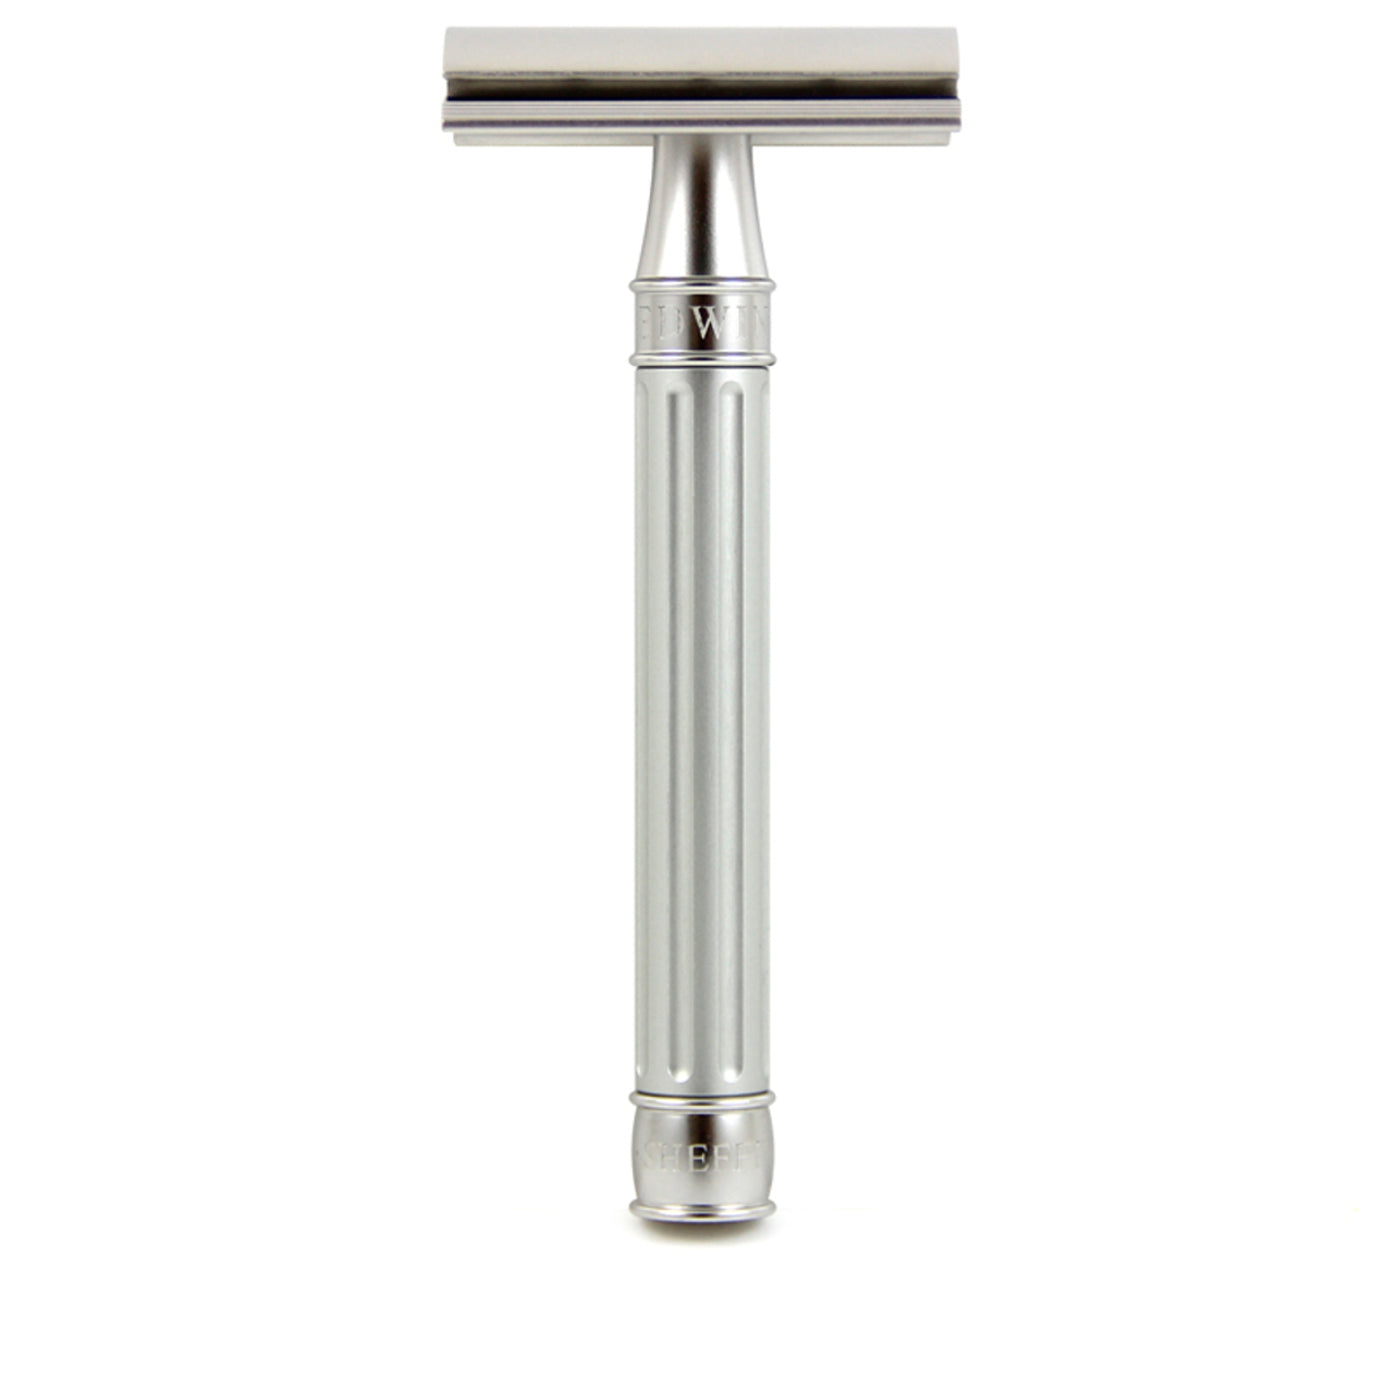 Edwin Jagger 3ONE6 Stainless Steel Double Edge Safety Razor, Silver